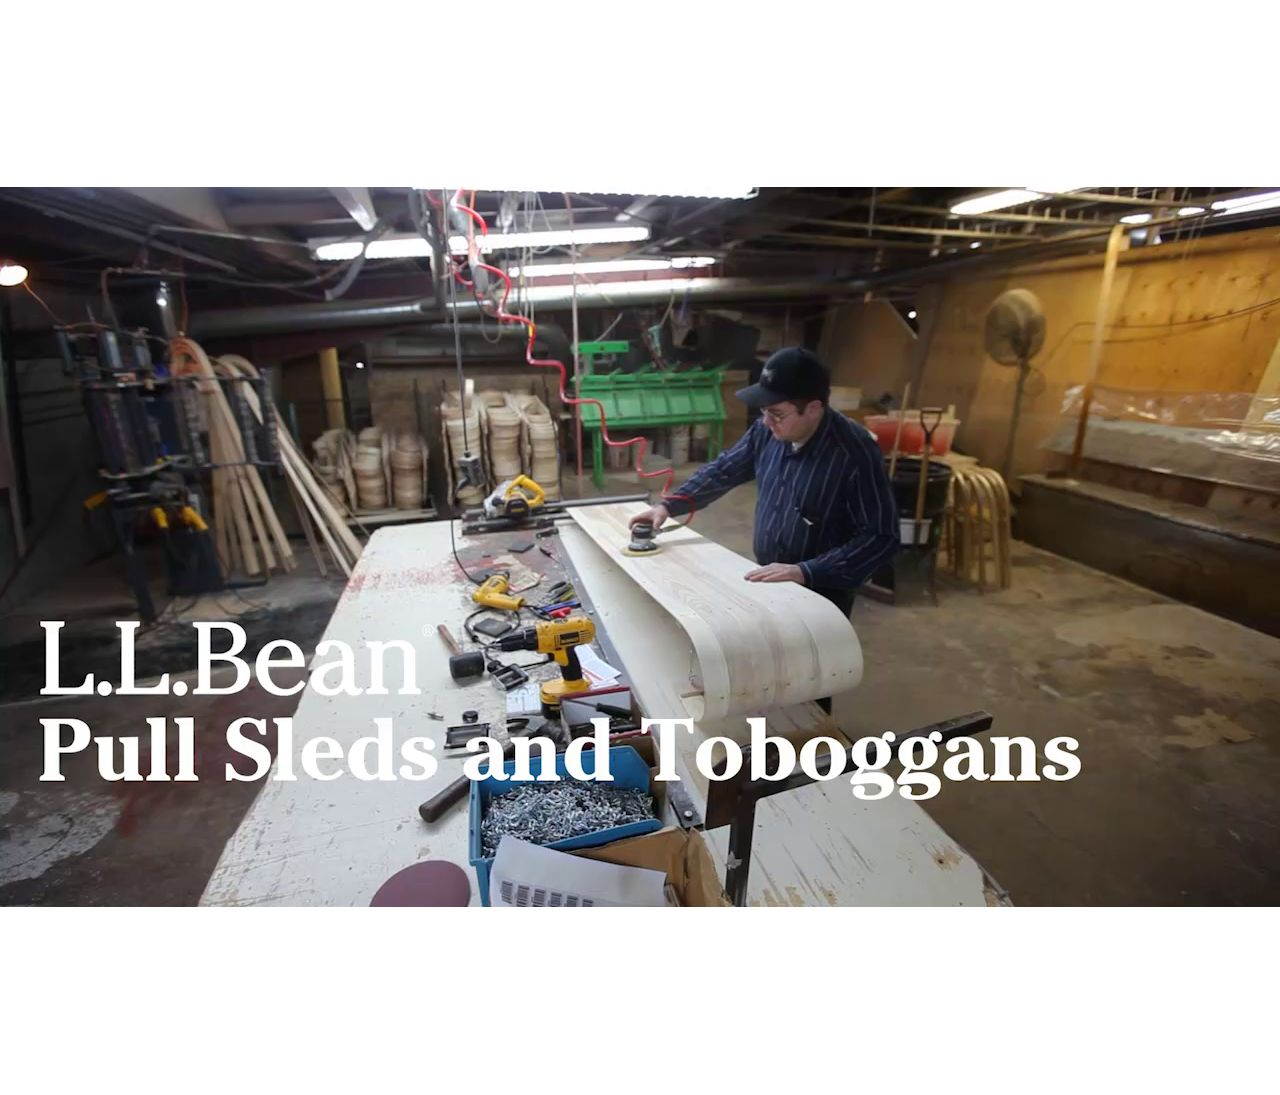 Video: Pull Sleds and Toboggans